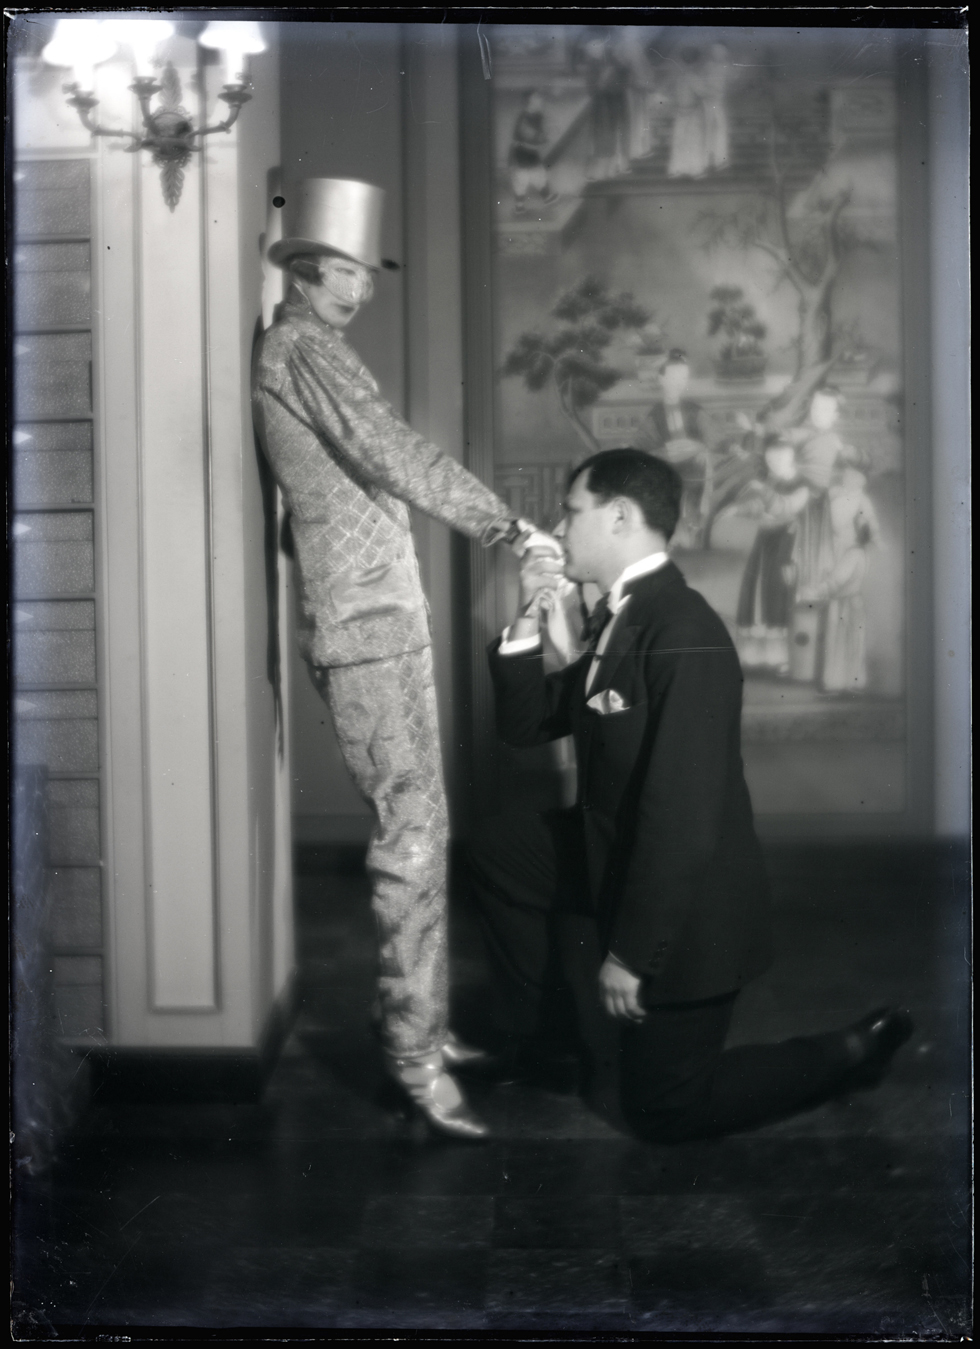 Nancy Cunard and Tristan Tzara at the ball of count de Beaumont in 1924. Photographed by Man Ray © Man Ray Trust - Adagp, Paris 2013 / Centre Georges Pompidou